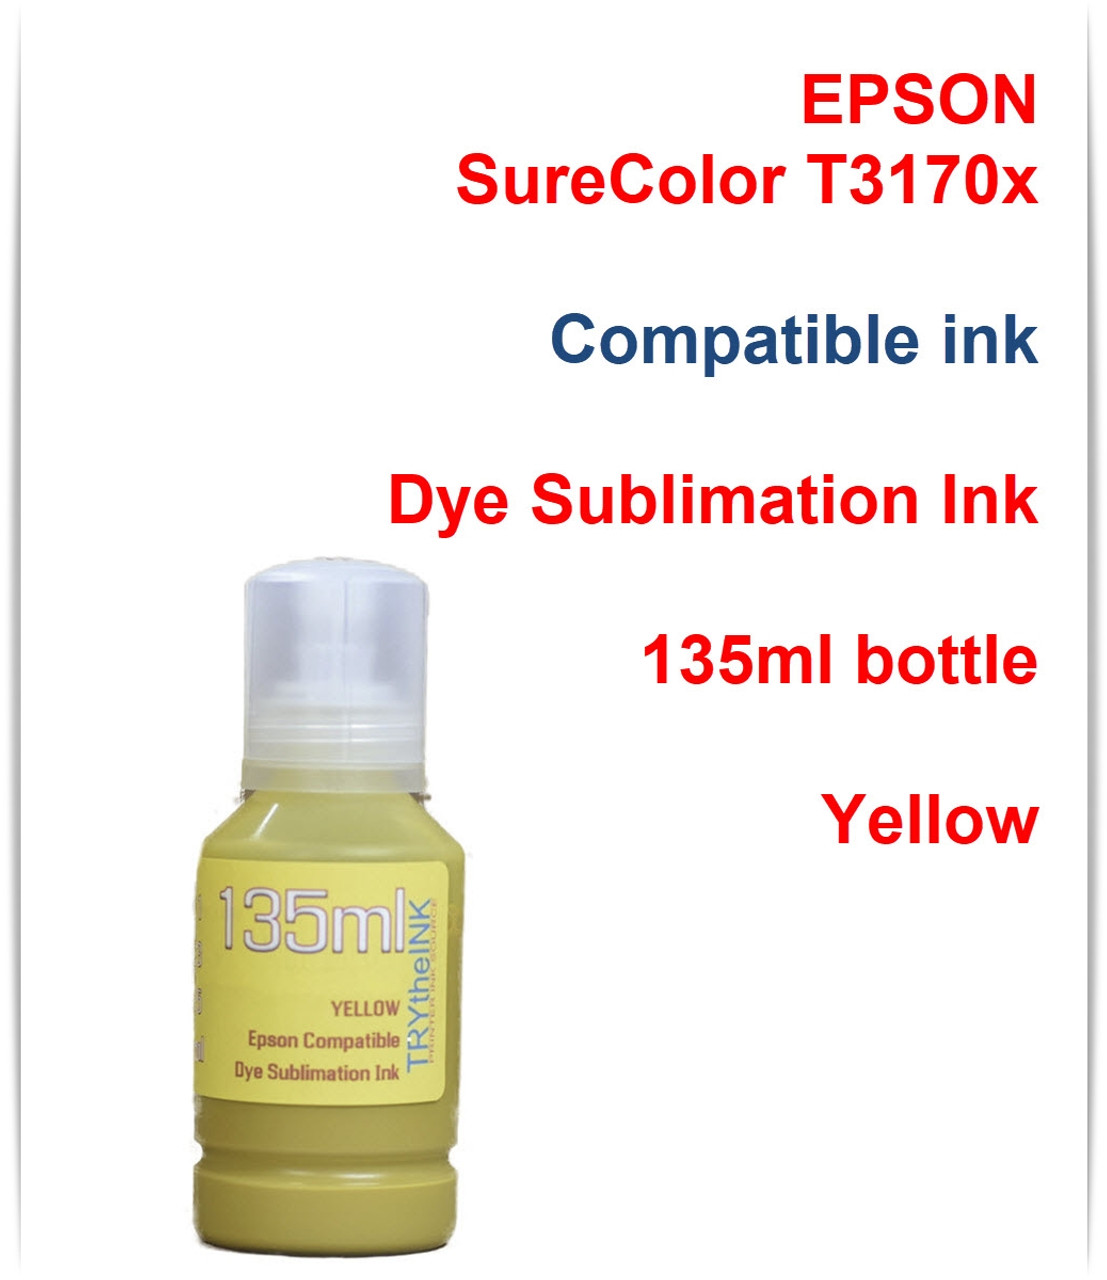 Yellow Dye Sublimation Ink - 135ml bottle for EPSON SureColor T3170x printer